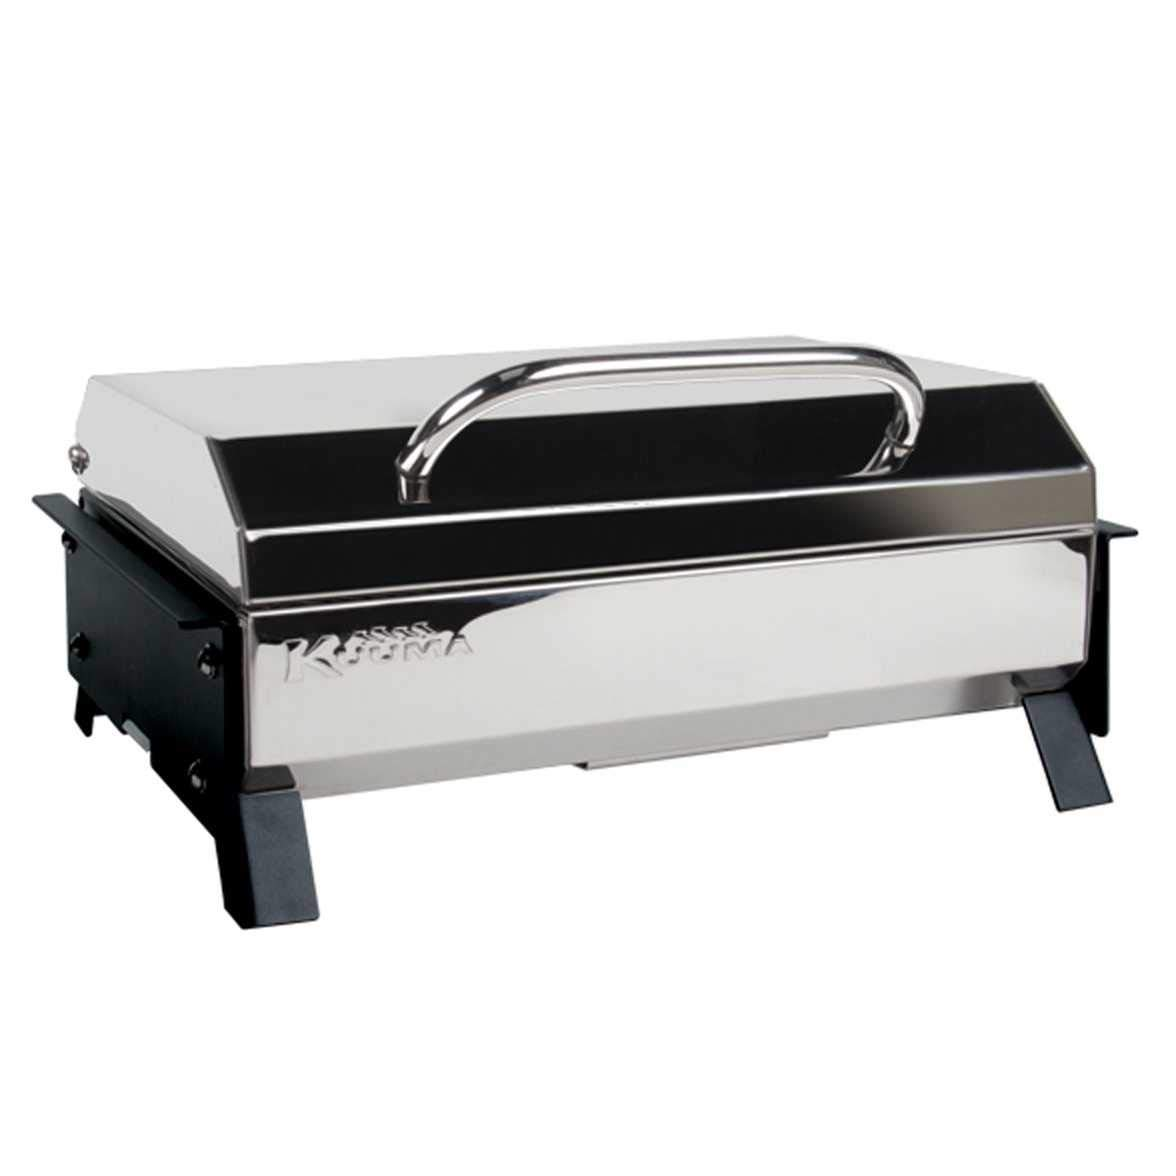 Camco 58162 Profile Cubed 150 Gas Grill